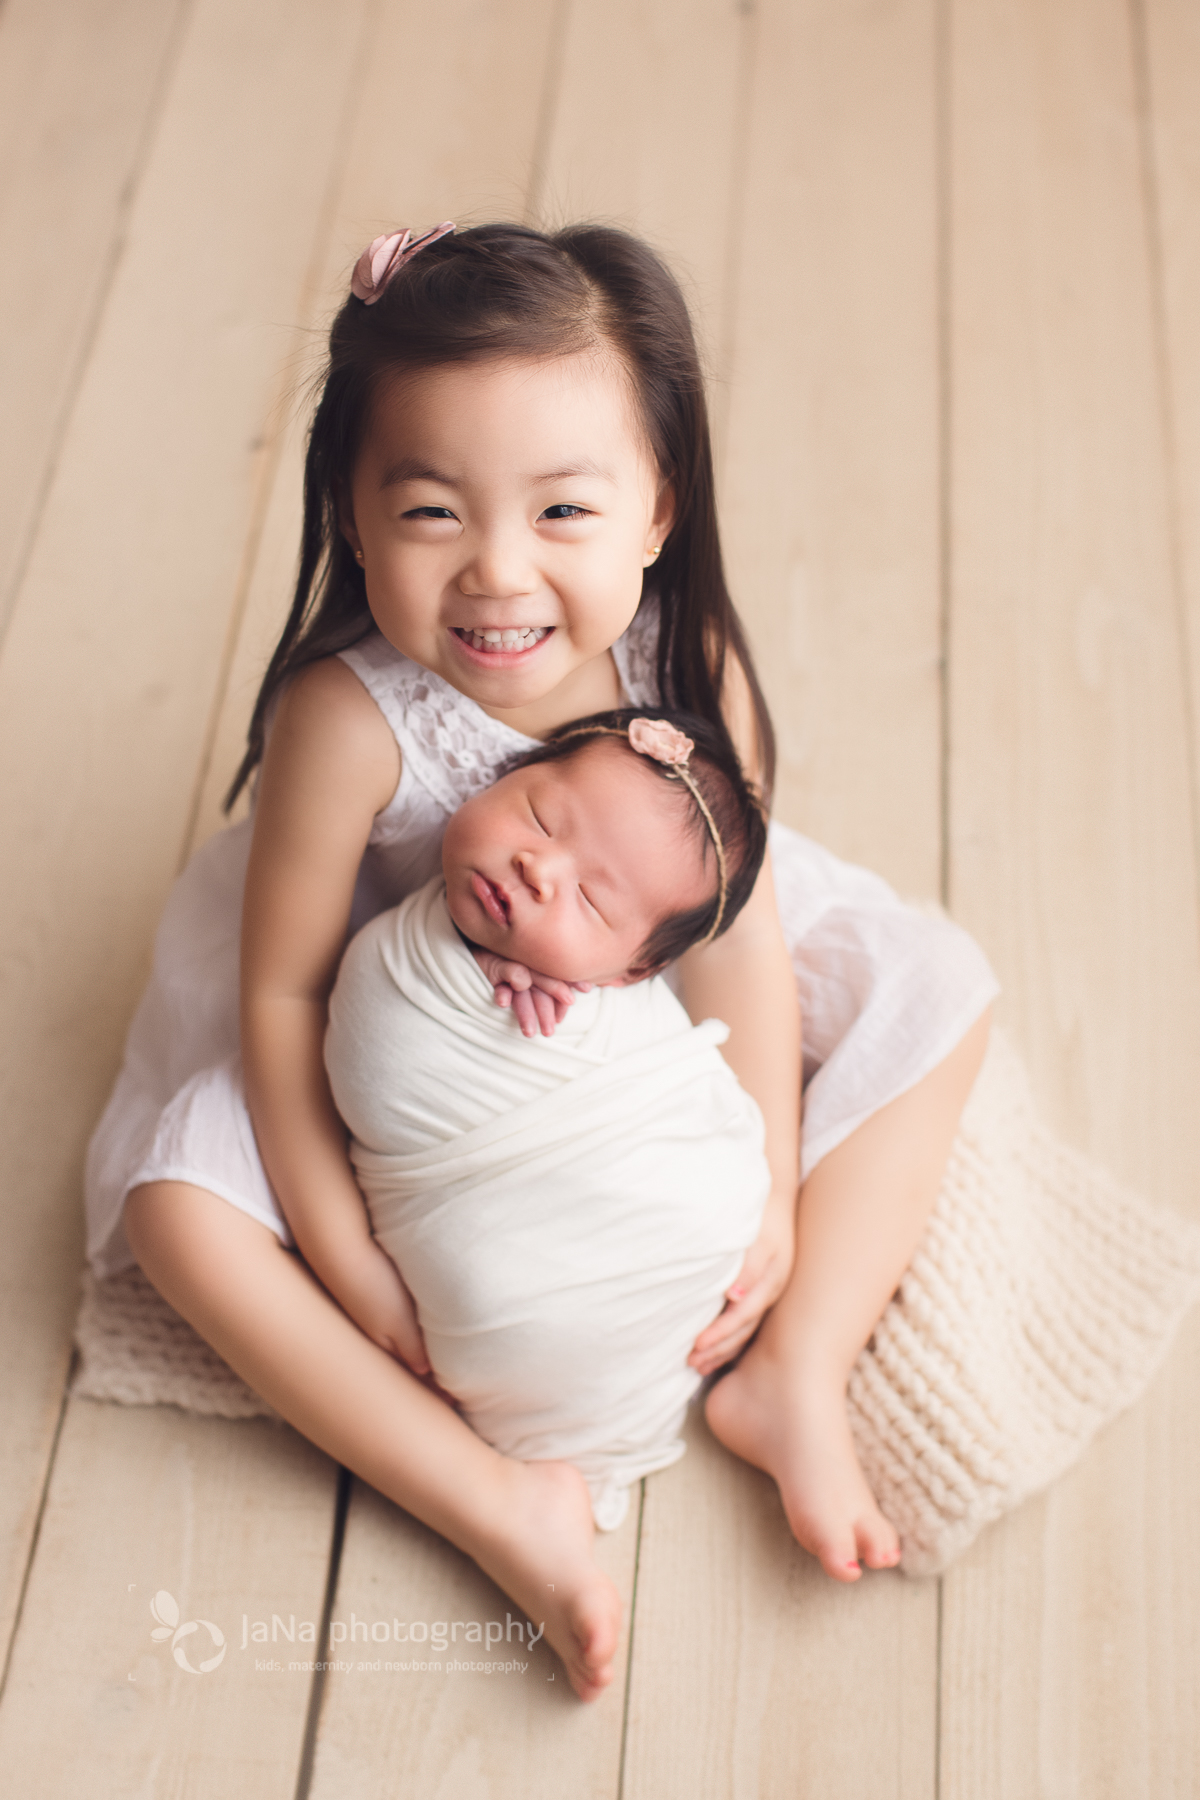 Newborn photography with siblings - Vancouver and Burnaby